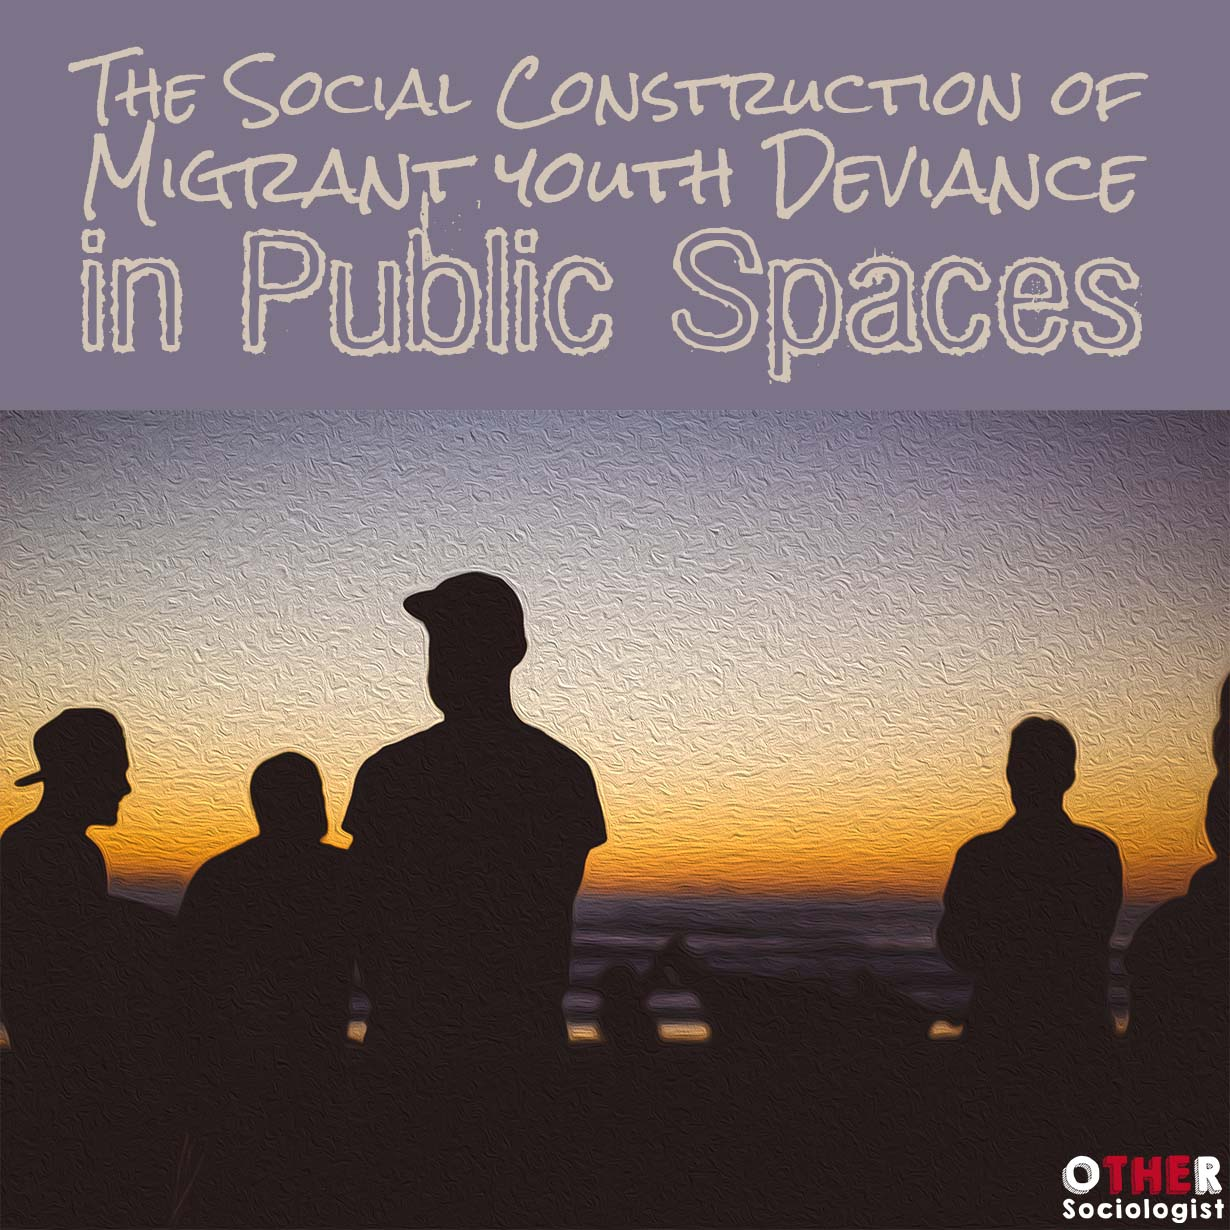 The Social Construction of Migrant Youth Deviance in Public Spaces